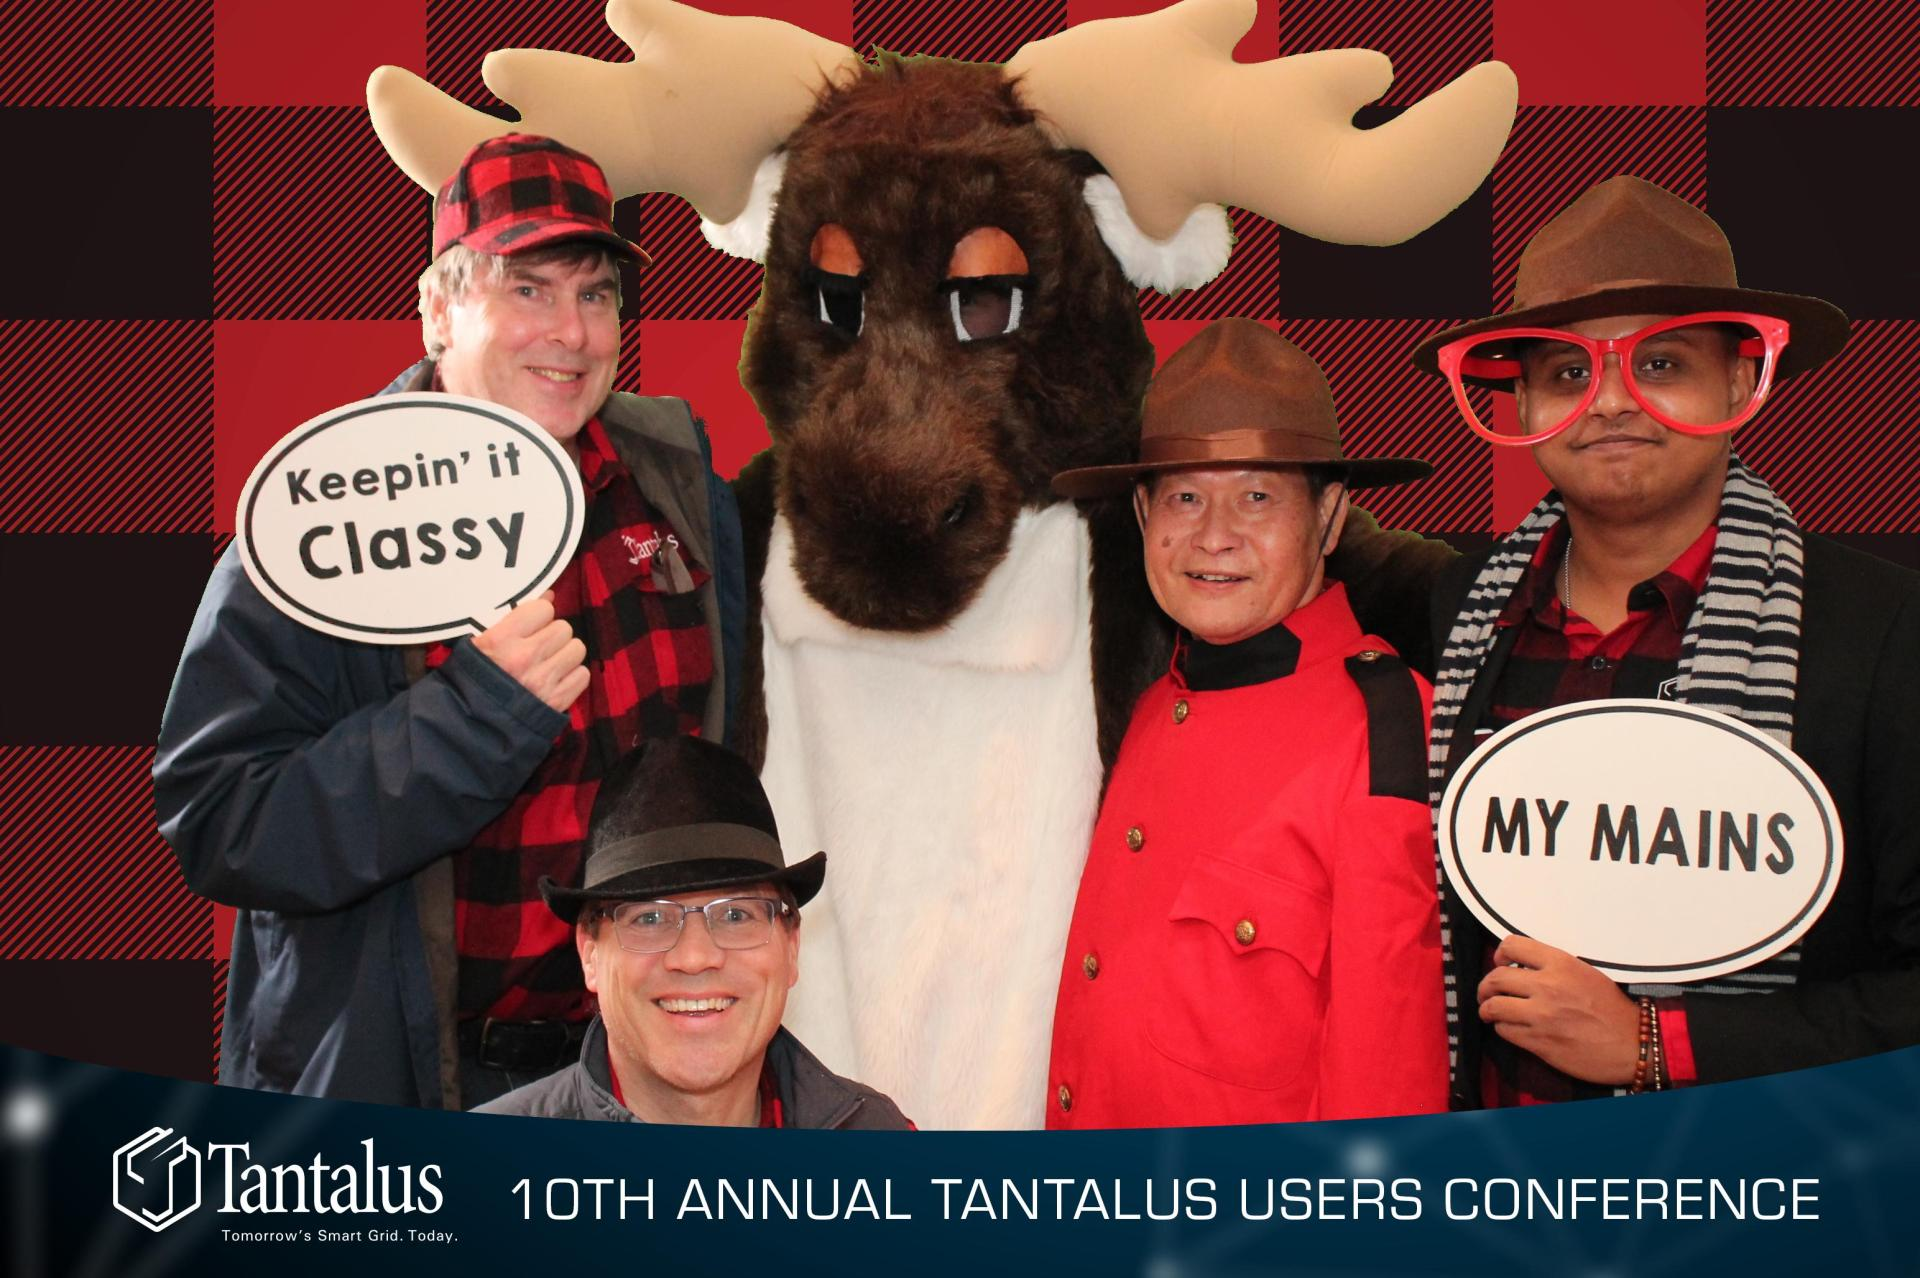 team photo at event